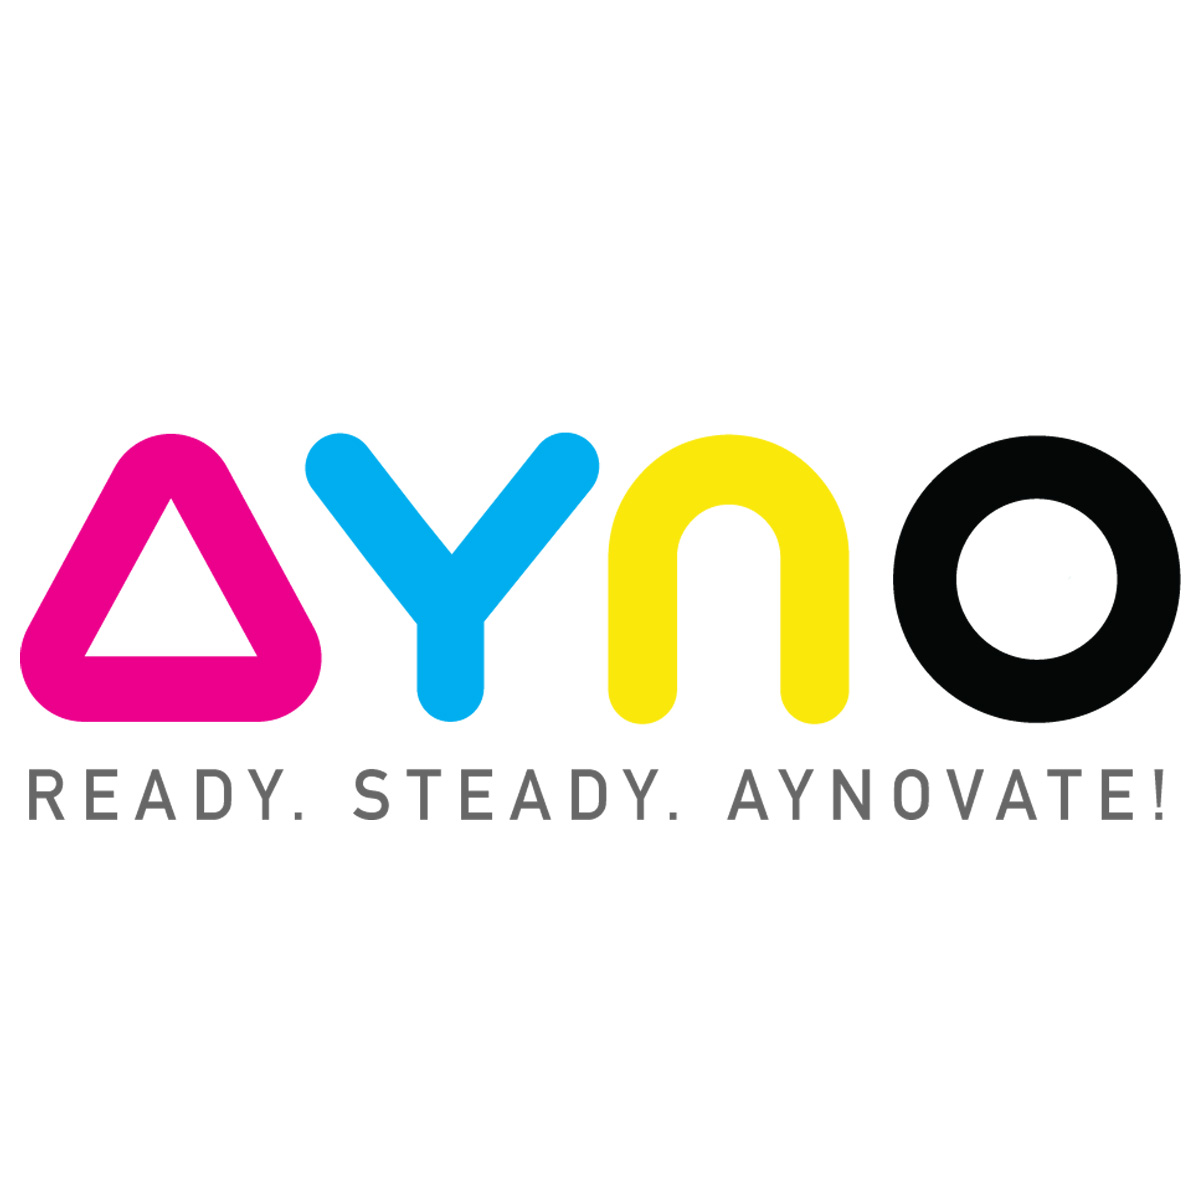 Ayno, la plateforme d'innovation intelligente